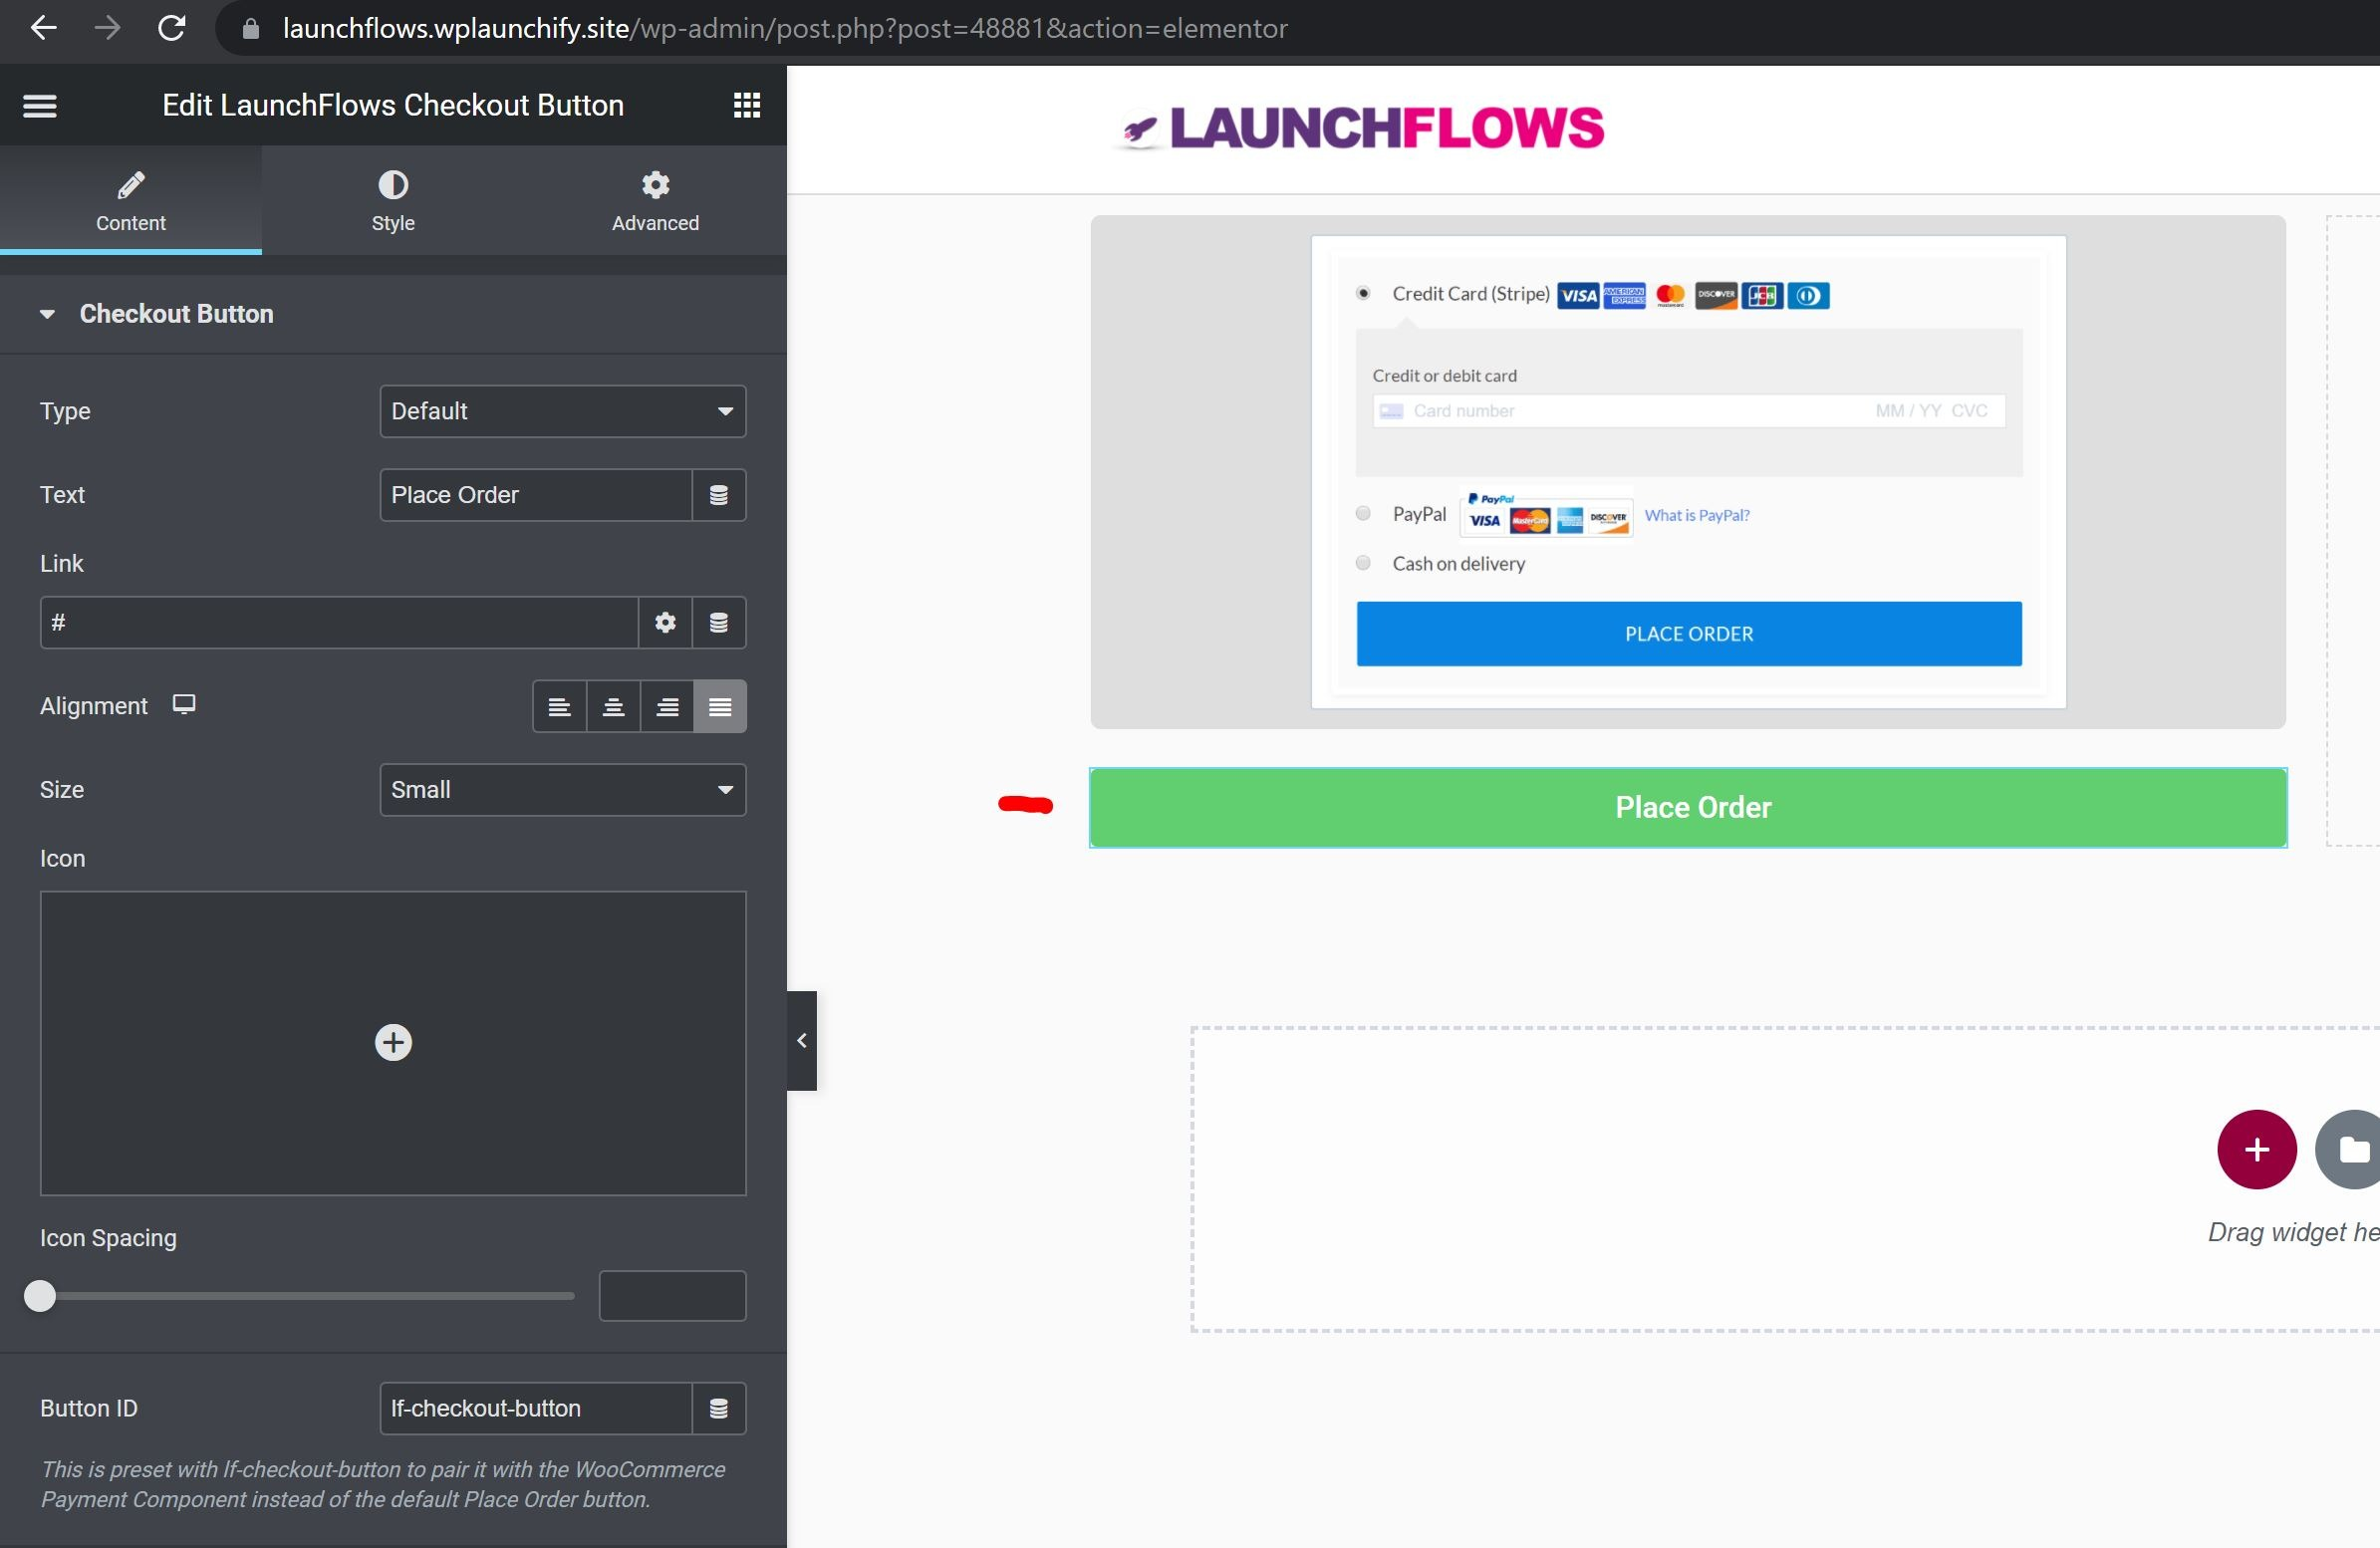 LaunchFlows Add New Place Order Button